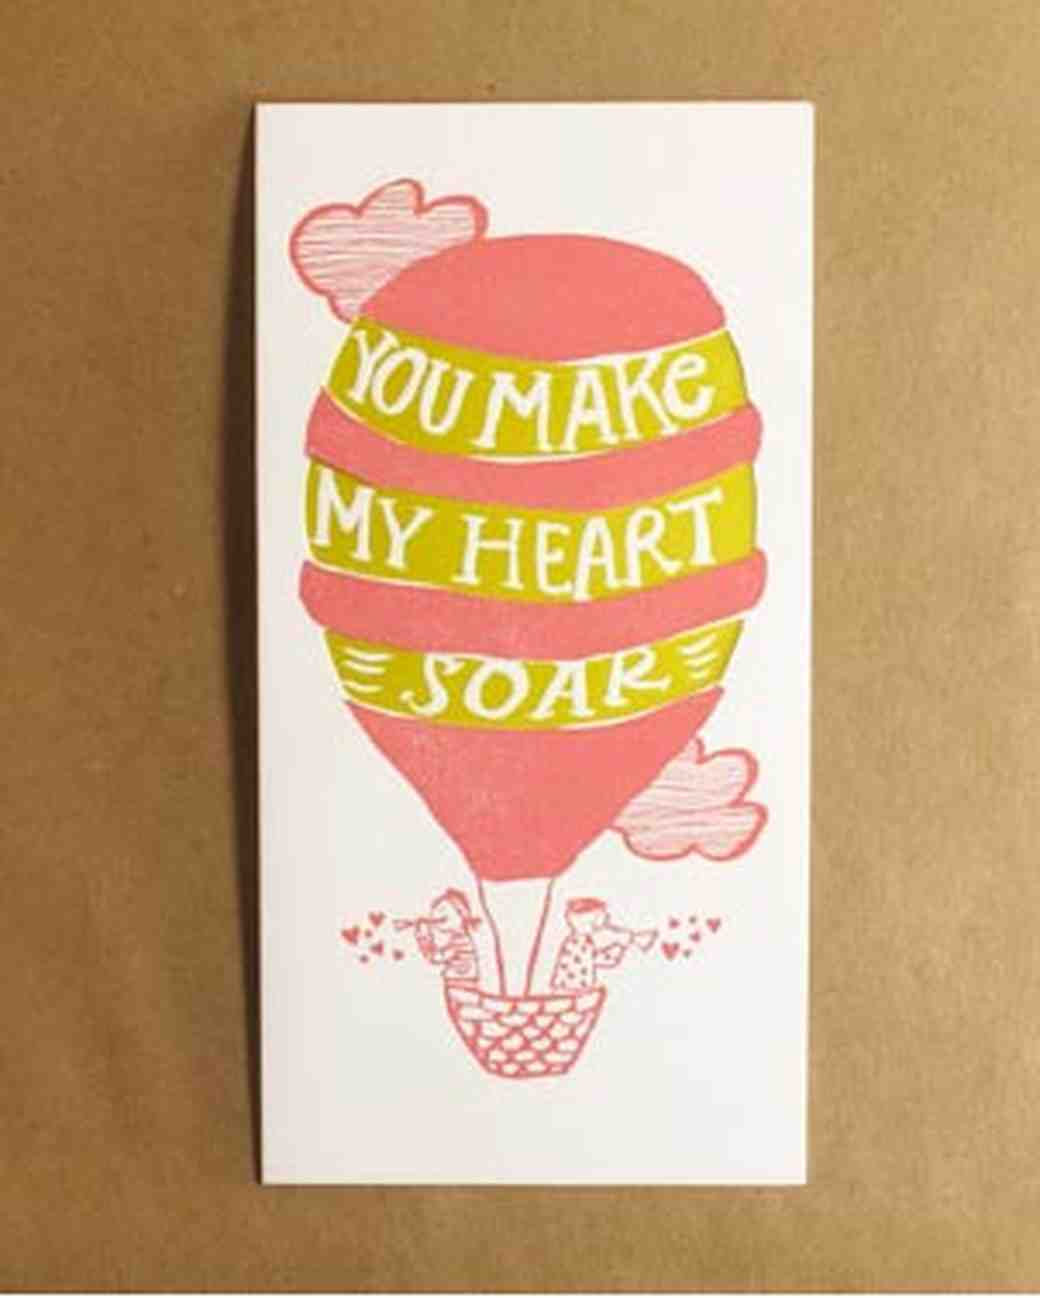 vday-cards-we-love-egg-press-heart-soar-hotair-balloon-0216.jpg